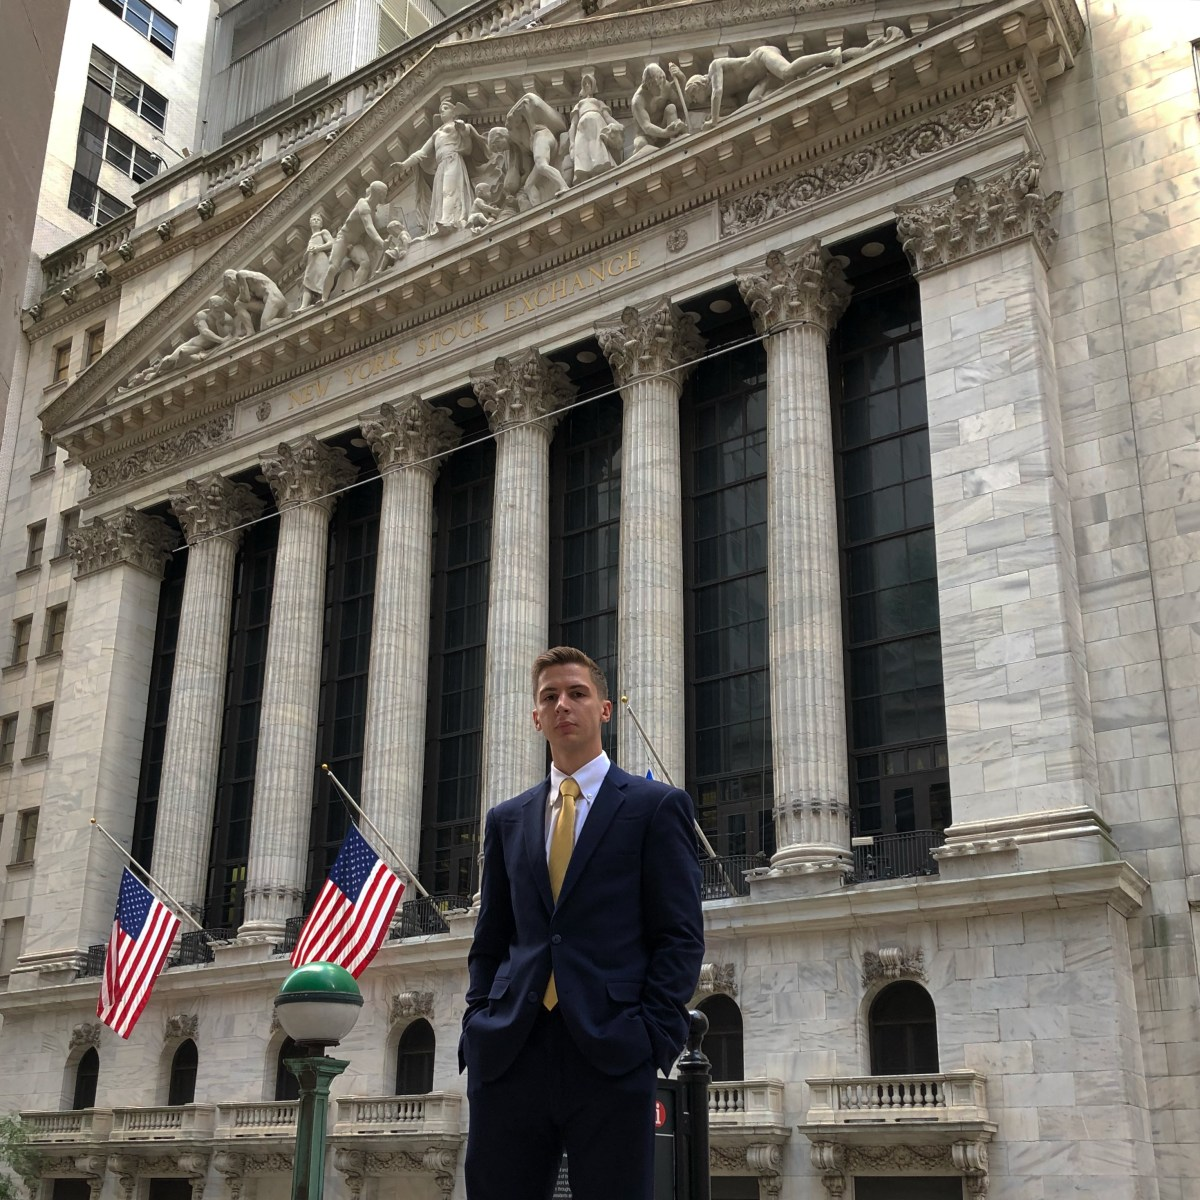 Graduate receives Wall Street job right out college